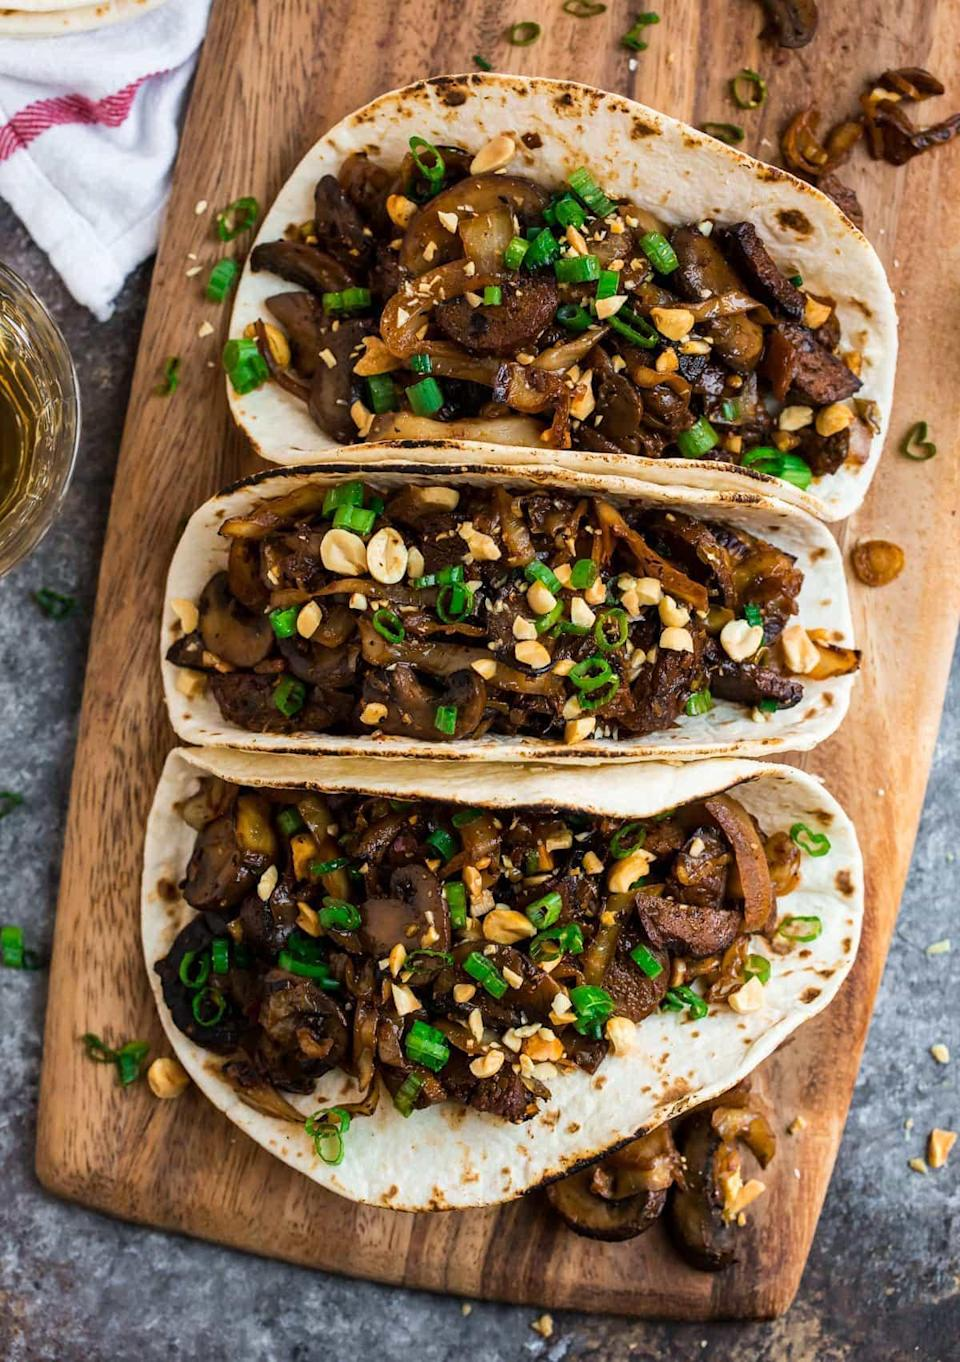 """<p>You can use almost any kind of mushroom to whip up these vegan tacos with a savory, soy-based sauce.</p> <p>Get the recipe <a href=""""https://www.wellplated.com/mushroom-tacos/"""" rel=""""nofollow noopener"""" target=""""_blank"""" data-ylk=""""slk:here"""" class=""""link rapid-noclick-resp"""">here</a>.</p>"""